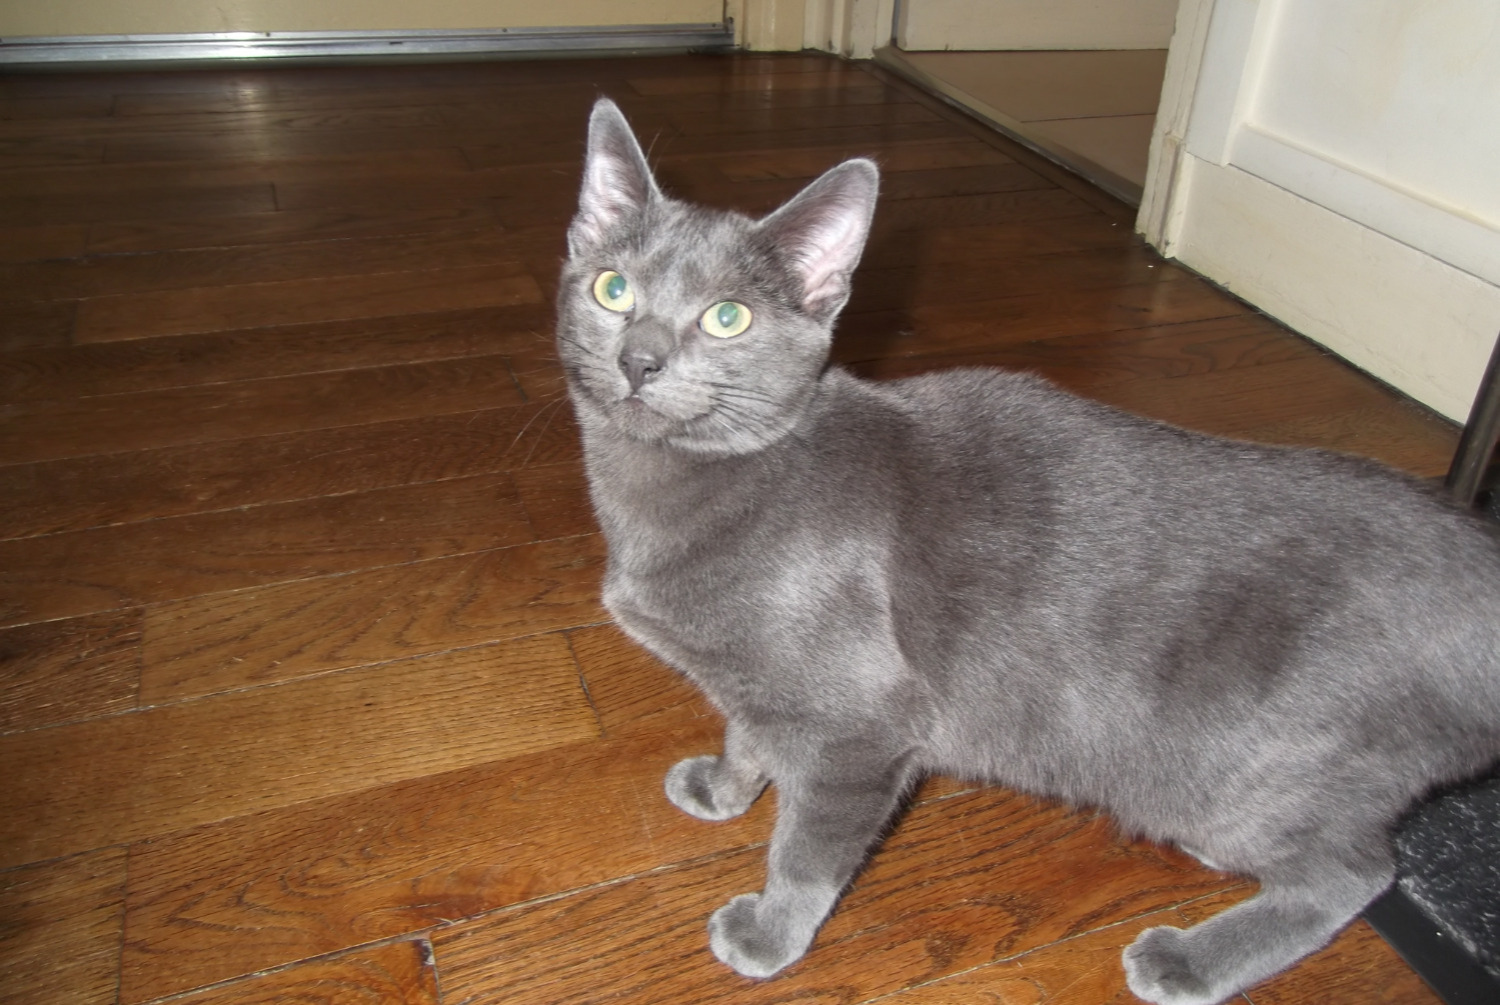 Discovery alert Cat Female , Between 4 and 6 months Caen France